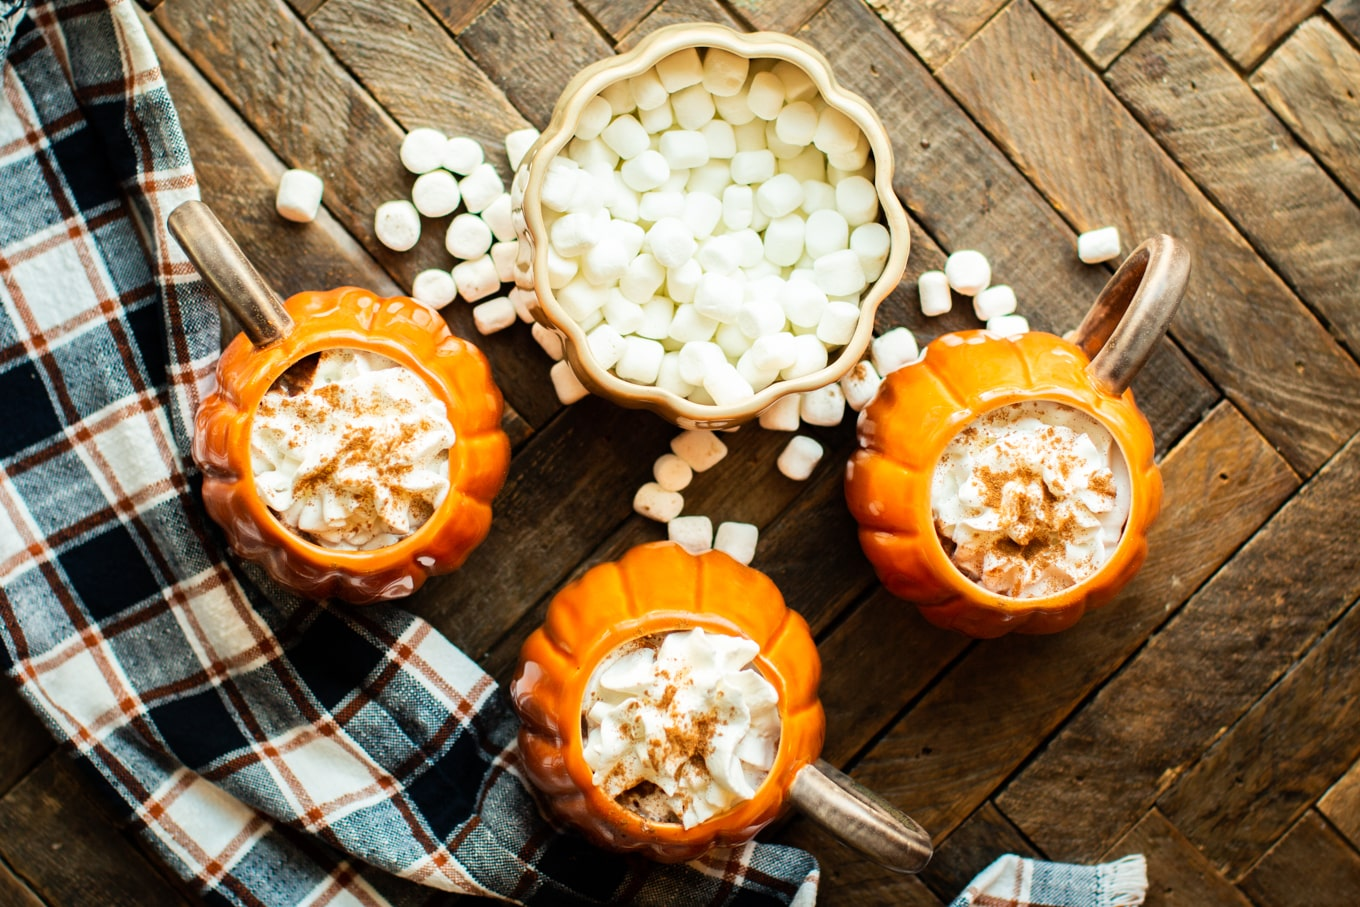 3 pumpkin mugs with whipped cream and nutmeg on top.